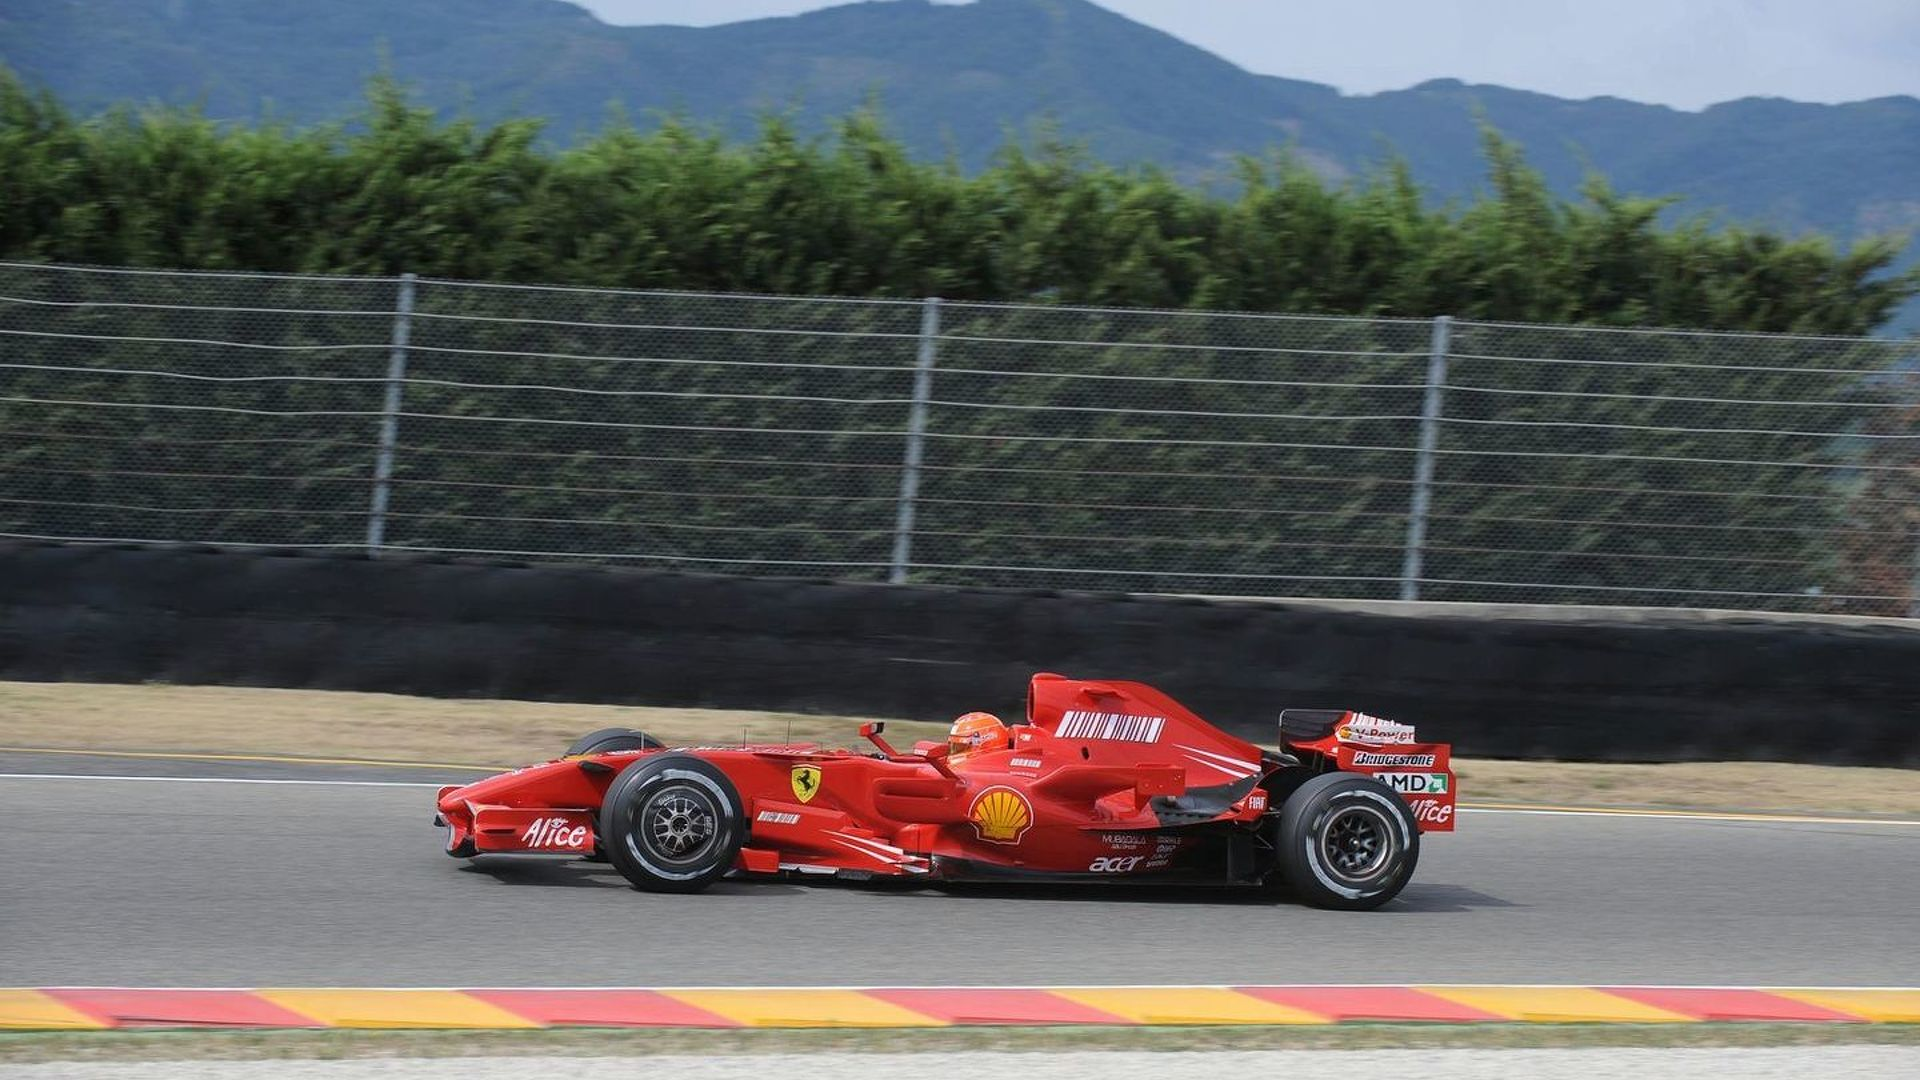 Schumacher to test F2007 again this week